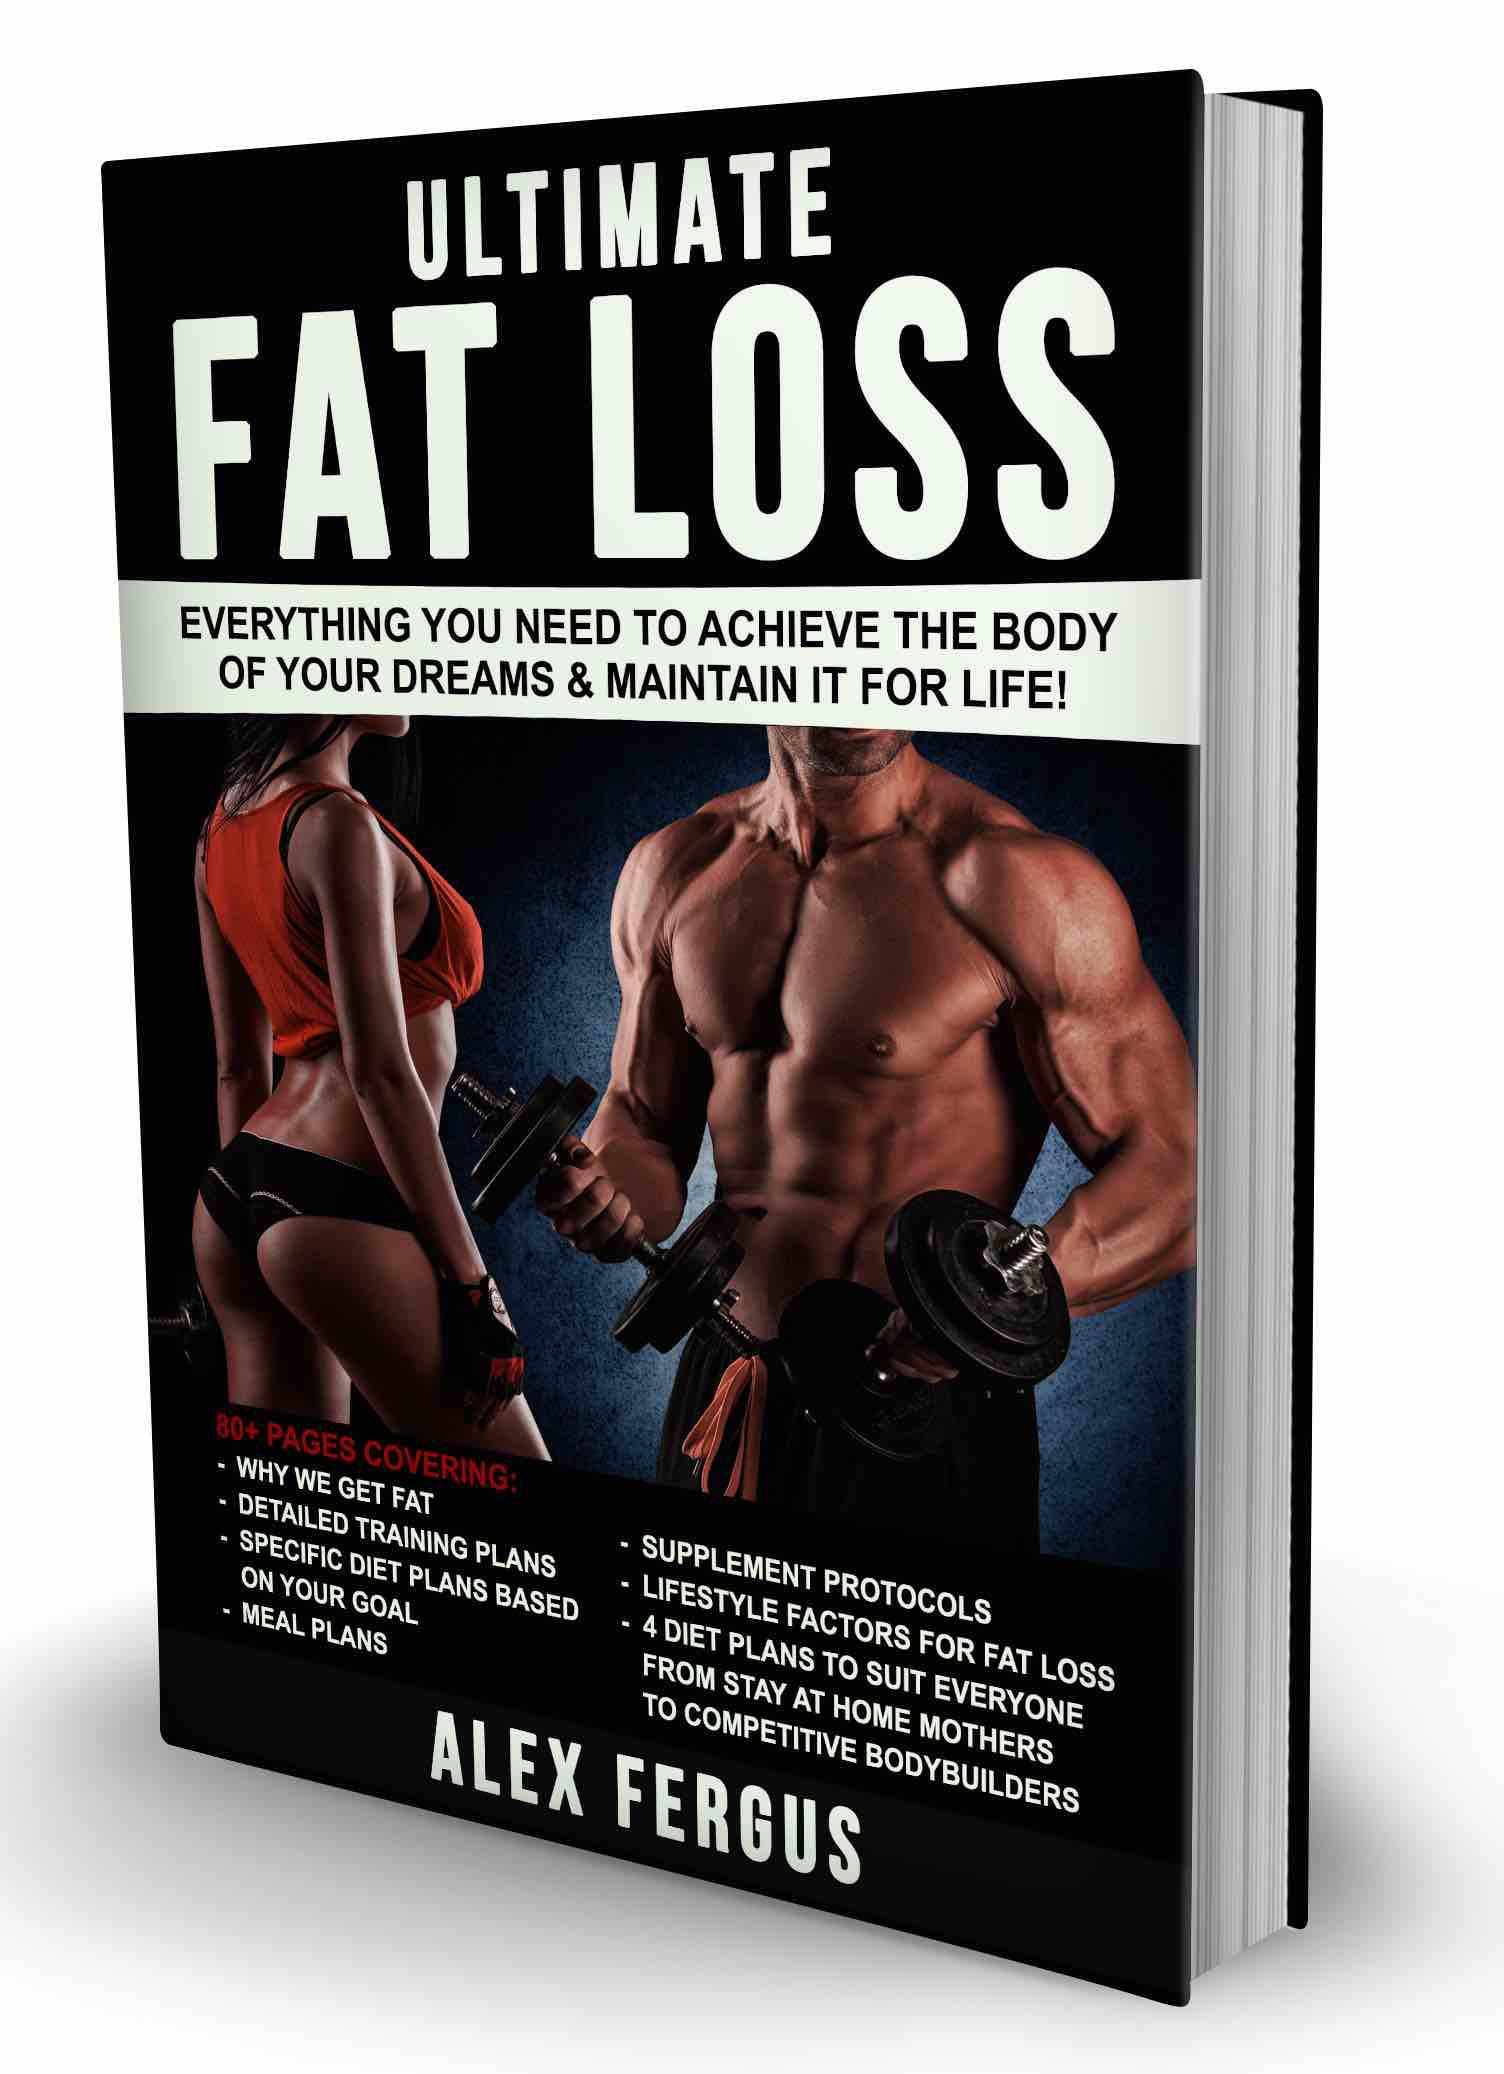 Ebooks by alex fergus everything you need to achieve the body of your dreams and maintain it for life fandeluxe Image collections